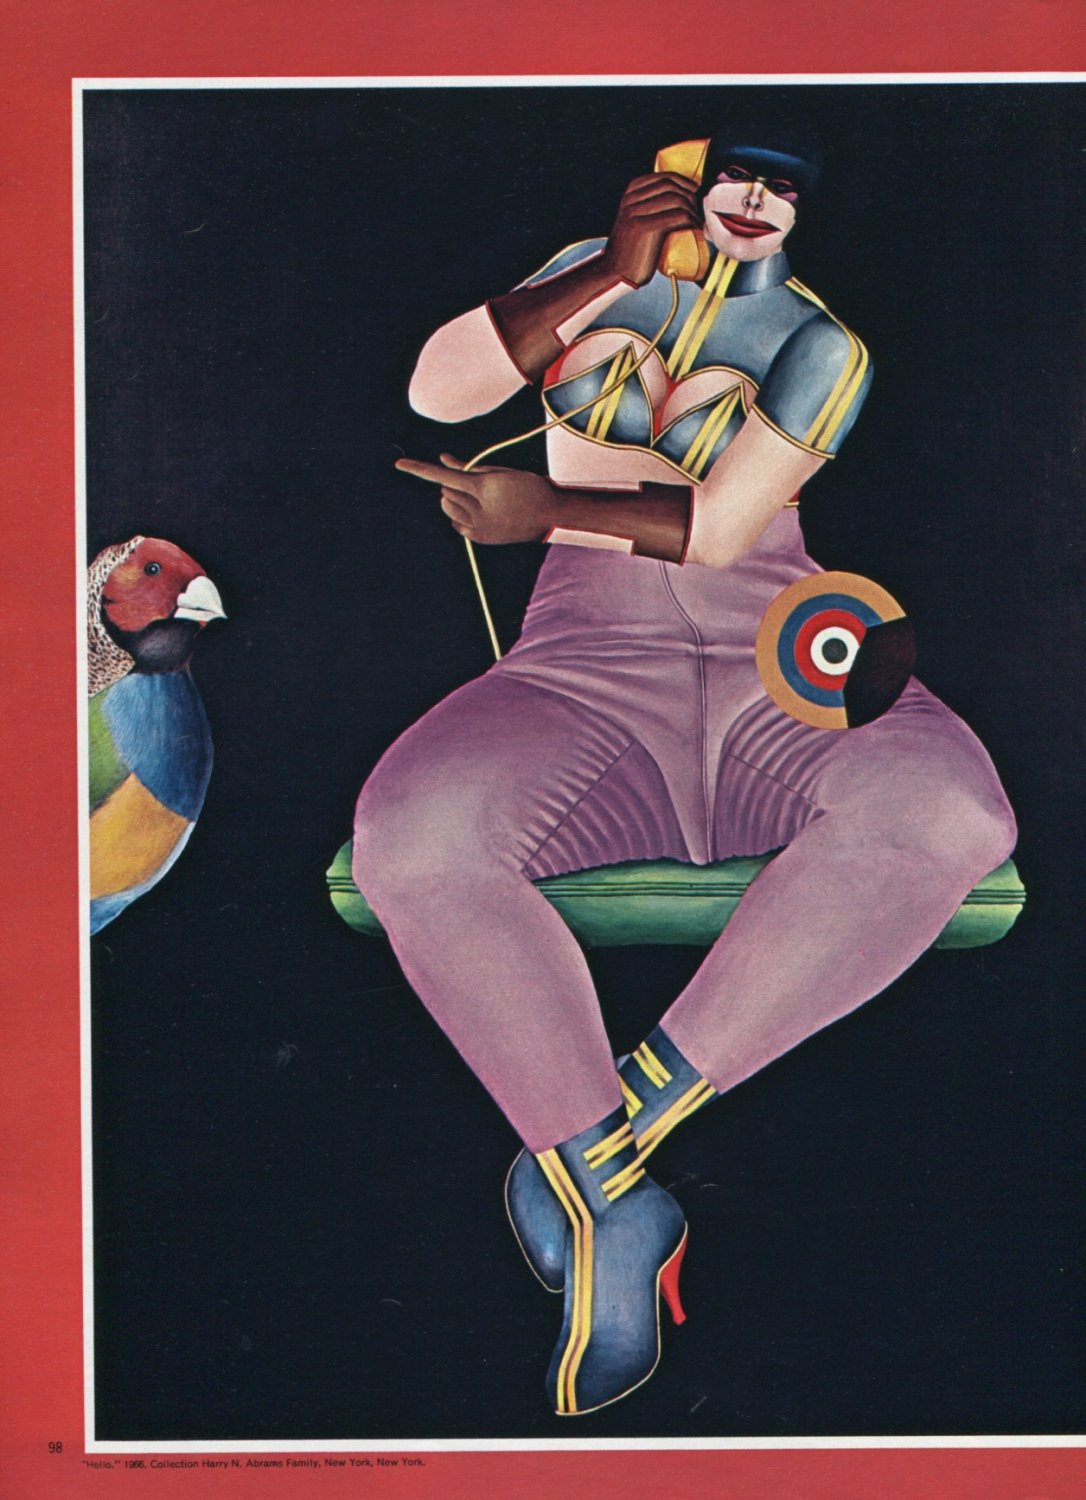 Richard Lindner Lindner's Ladies Vintage 1973 Magazine Article by Hilton Kramer